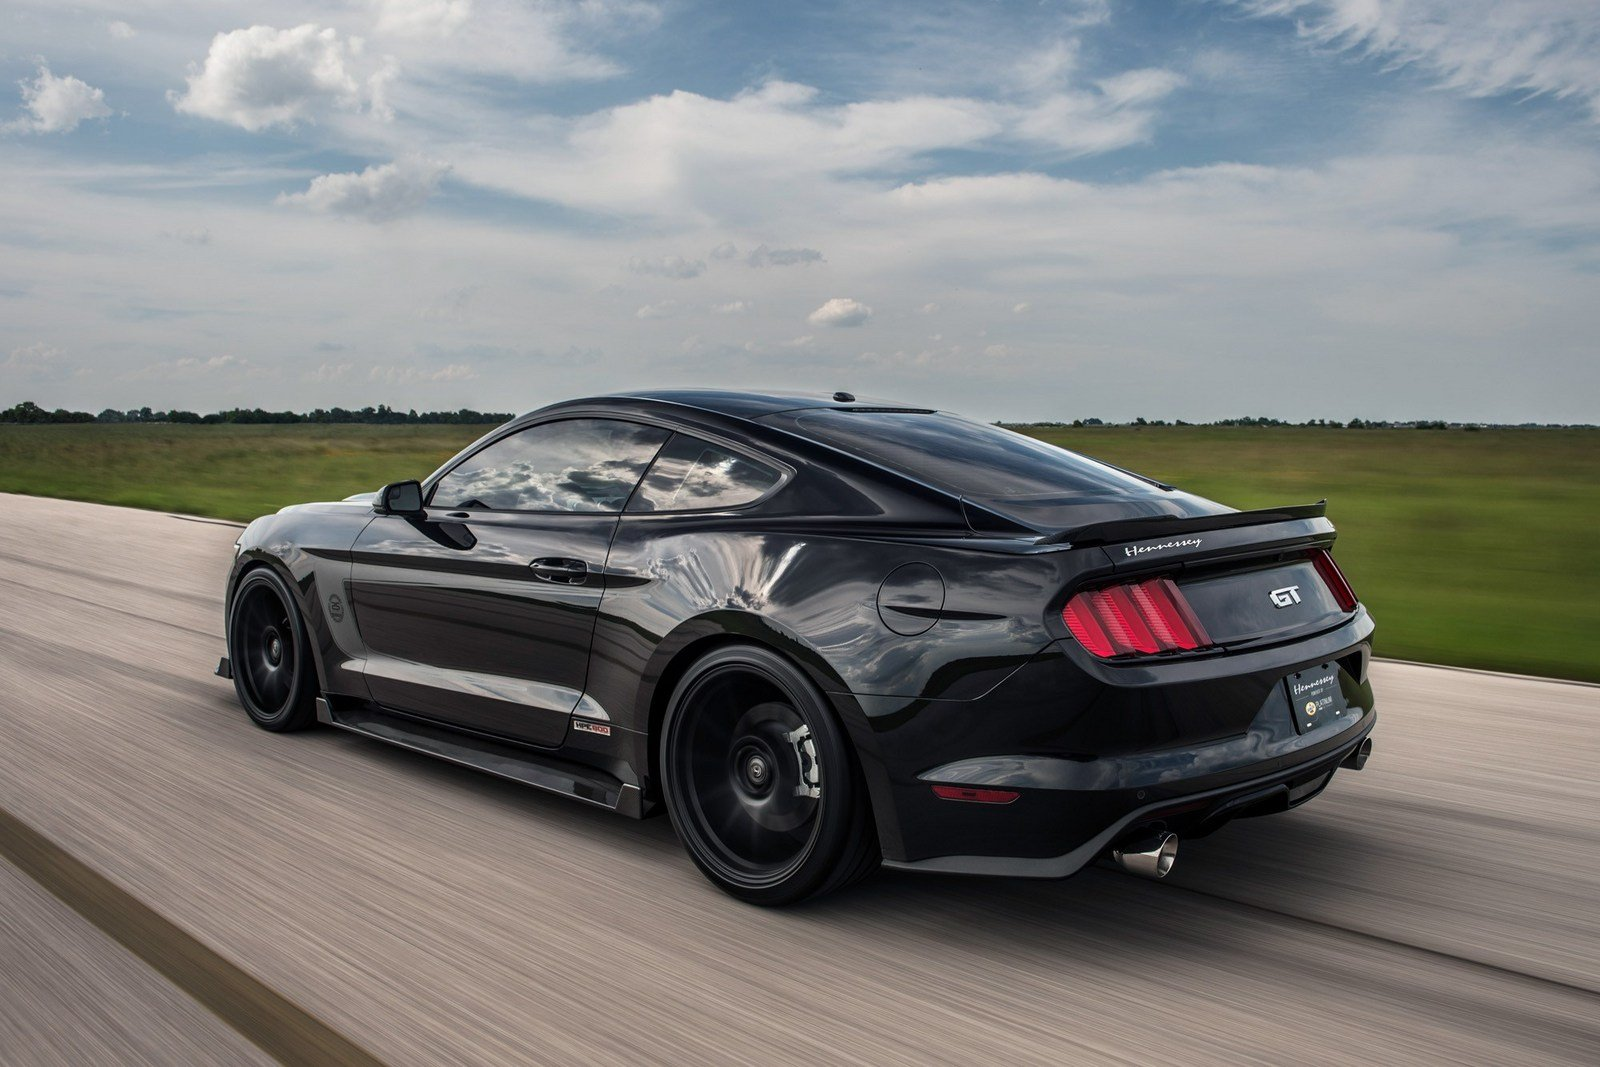 Hennessey 25th Anniversary Edition Hpe800 Ford Mustang For: 2016 Ford Mustang GT 25th Anniversary HPE800 Edition By